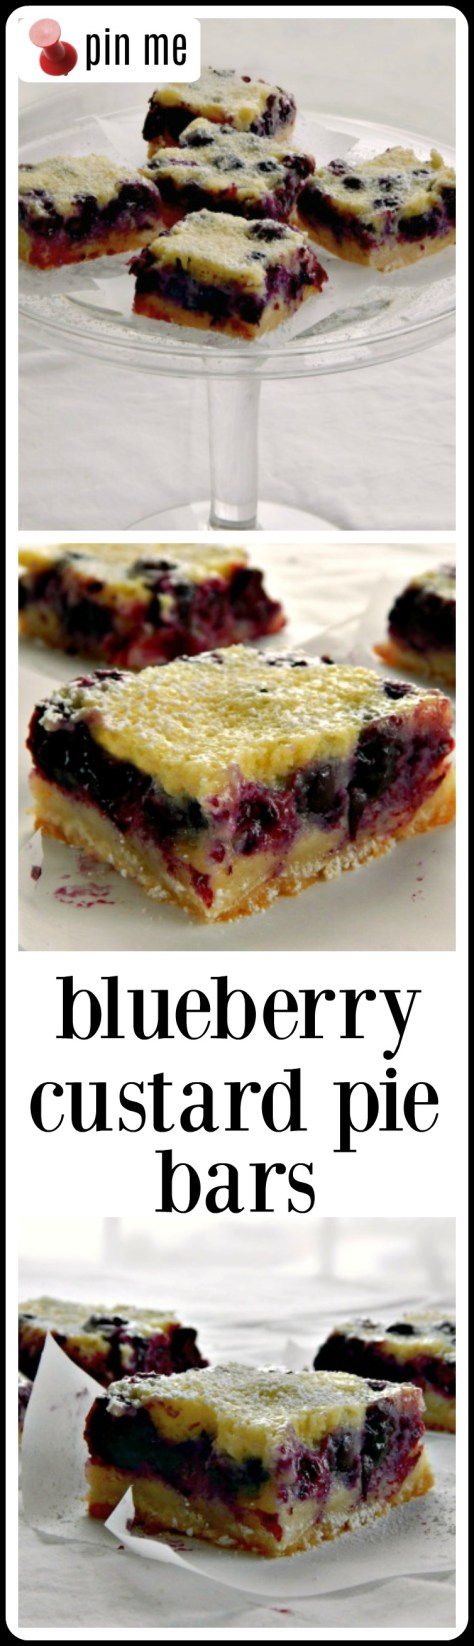 Blueberry Custard Pie Bars - they are EVERYTHING!